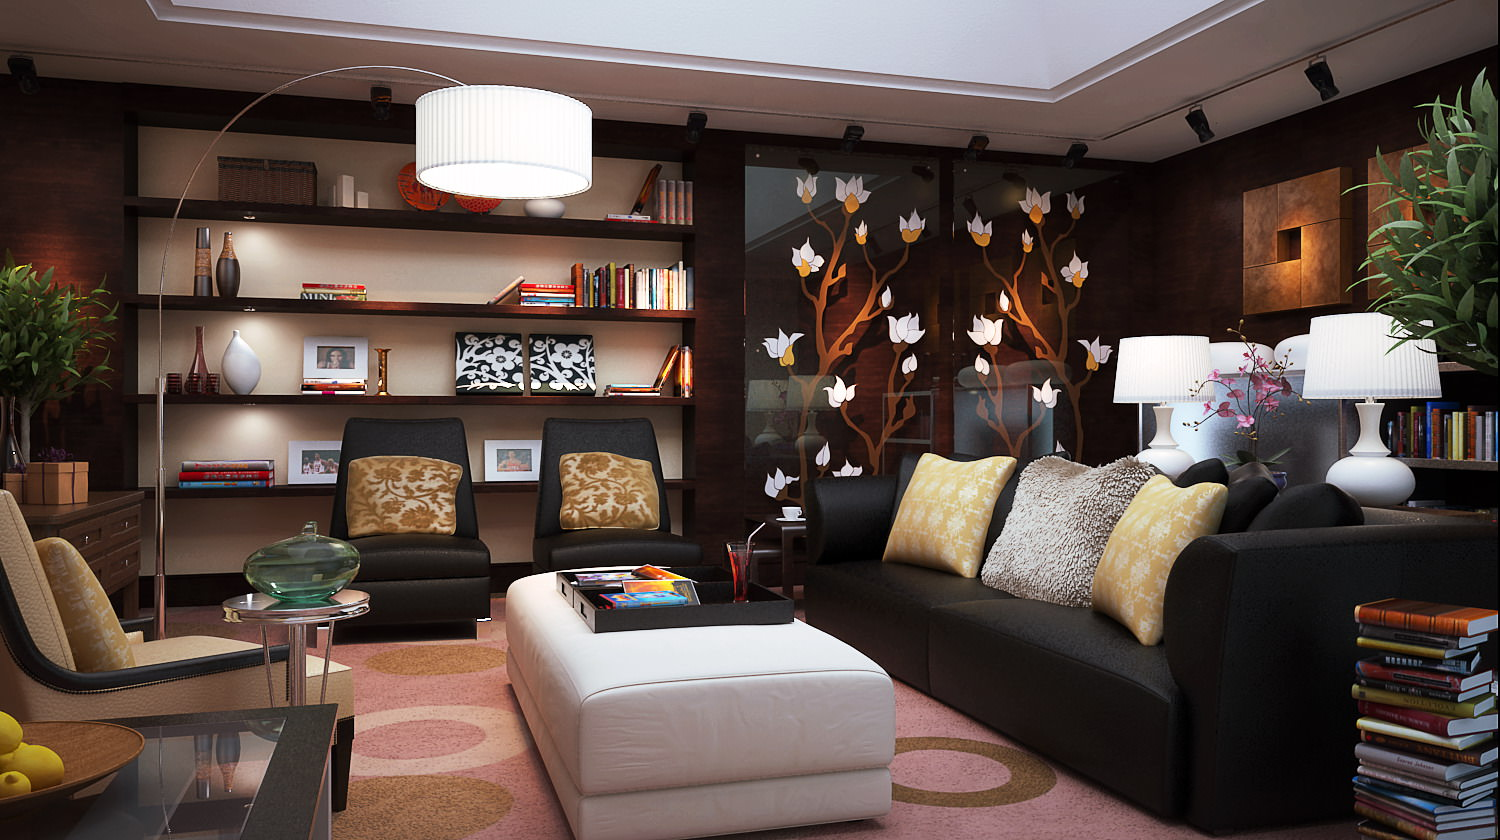 Living Room With Exquisite Wall Showcase 3d Model Max 1 ... Part 52